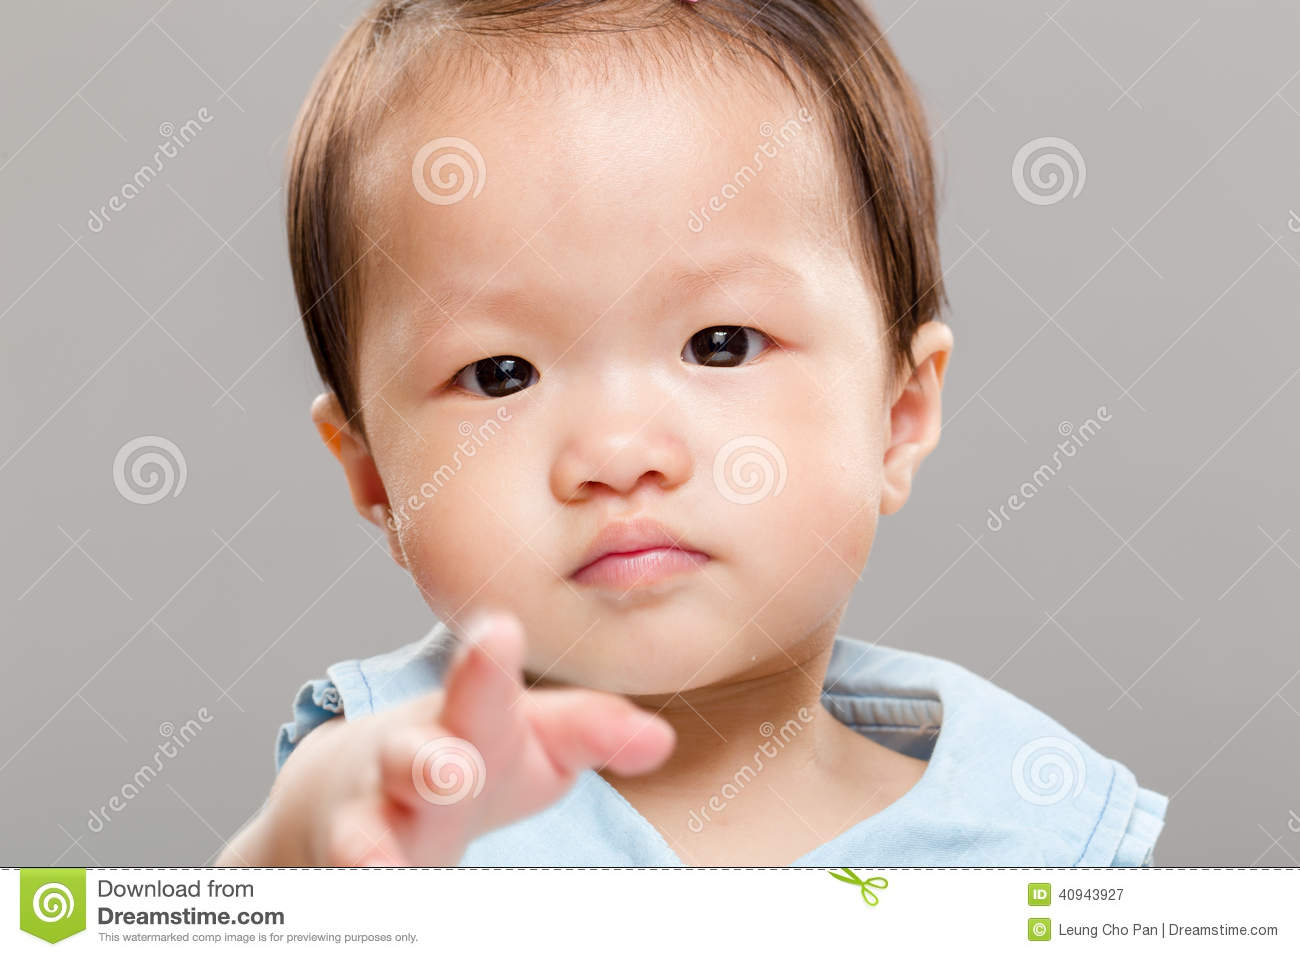 Funny Baby Girl Pointing Finger Stock Image - Image: 40943927 Cute Baby Pointing Finger